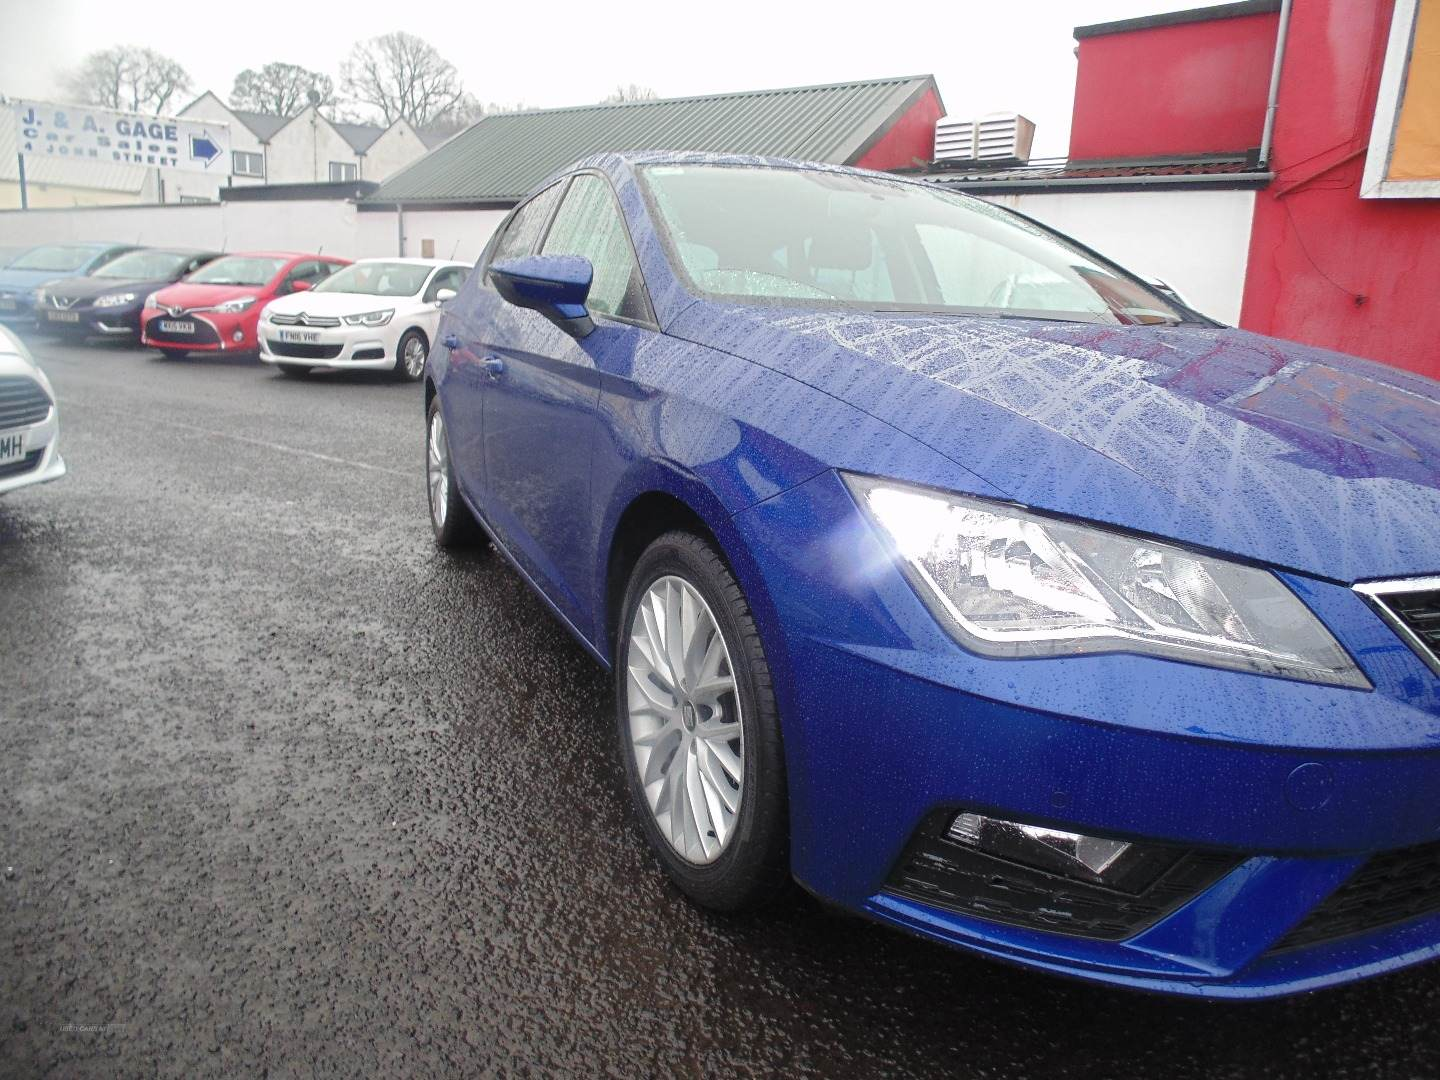 2019 Seat Leon 1.6  TDI  SE  Dynamic  [EZ]  5dr Diesel Manual  – Sam Creith Motors Ballymoney full